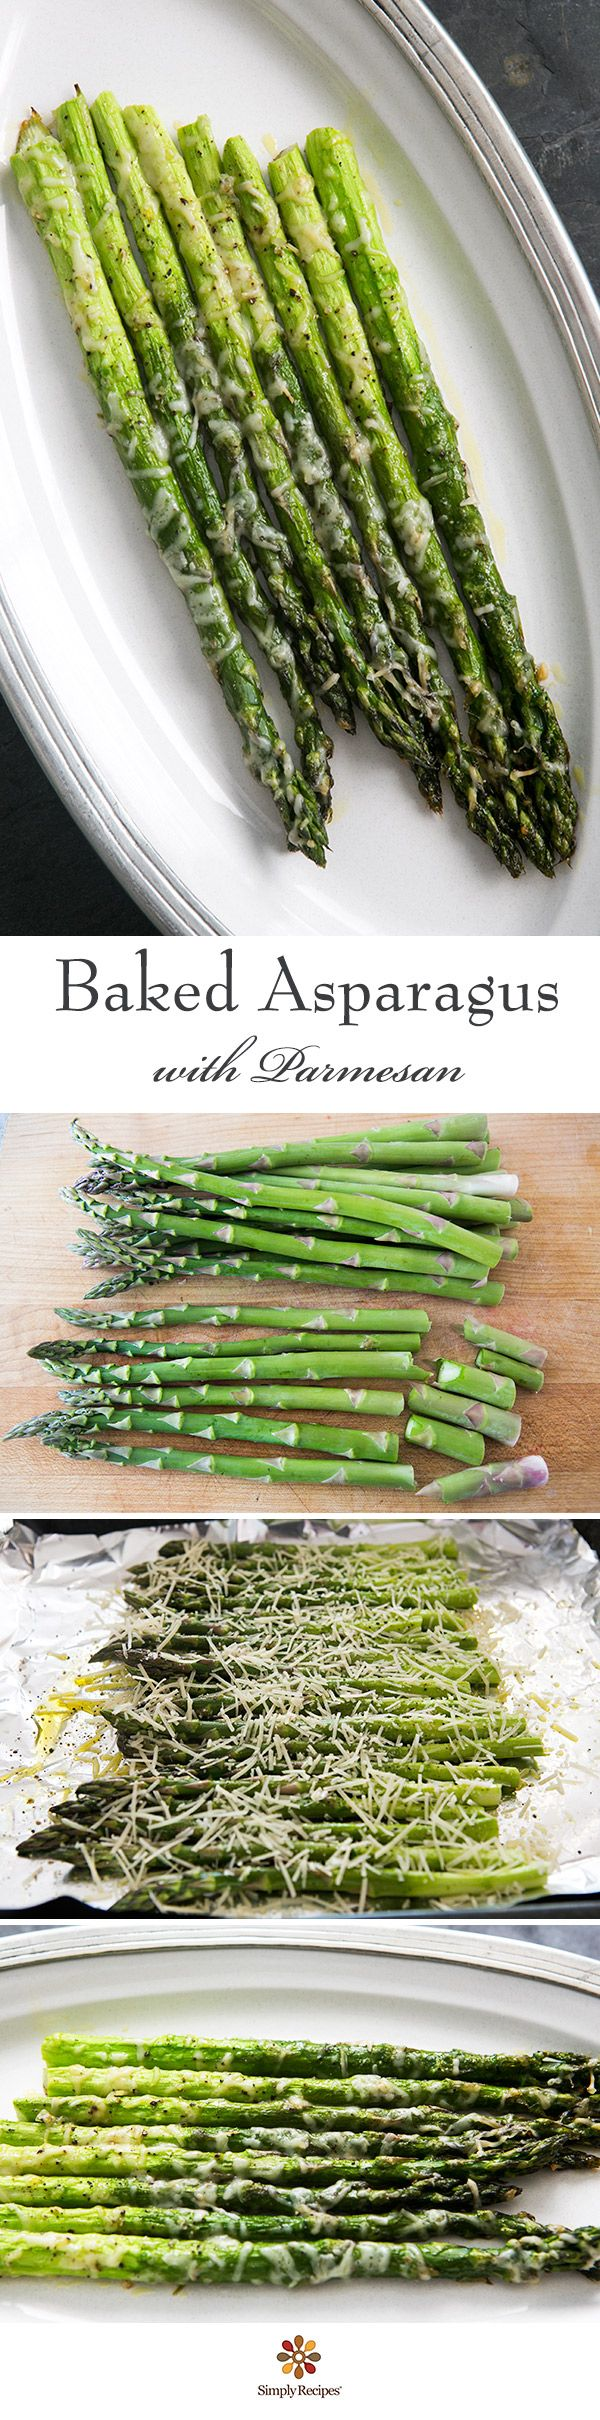 Baked Asparagus with Parmesan ~ So EASY and elegant! Asparagus spears, trimmed and sprinkled with olive oil, salt, pepper, and Parmesan cheese. Takes only 10 minutes to cook! Perfect side dish for entertaining. On SimplyRecipes.com